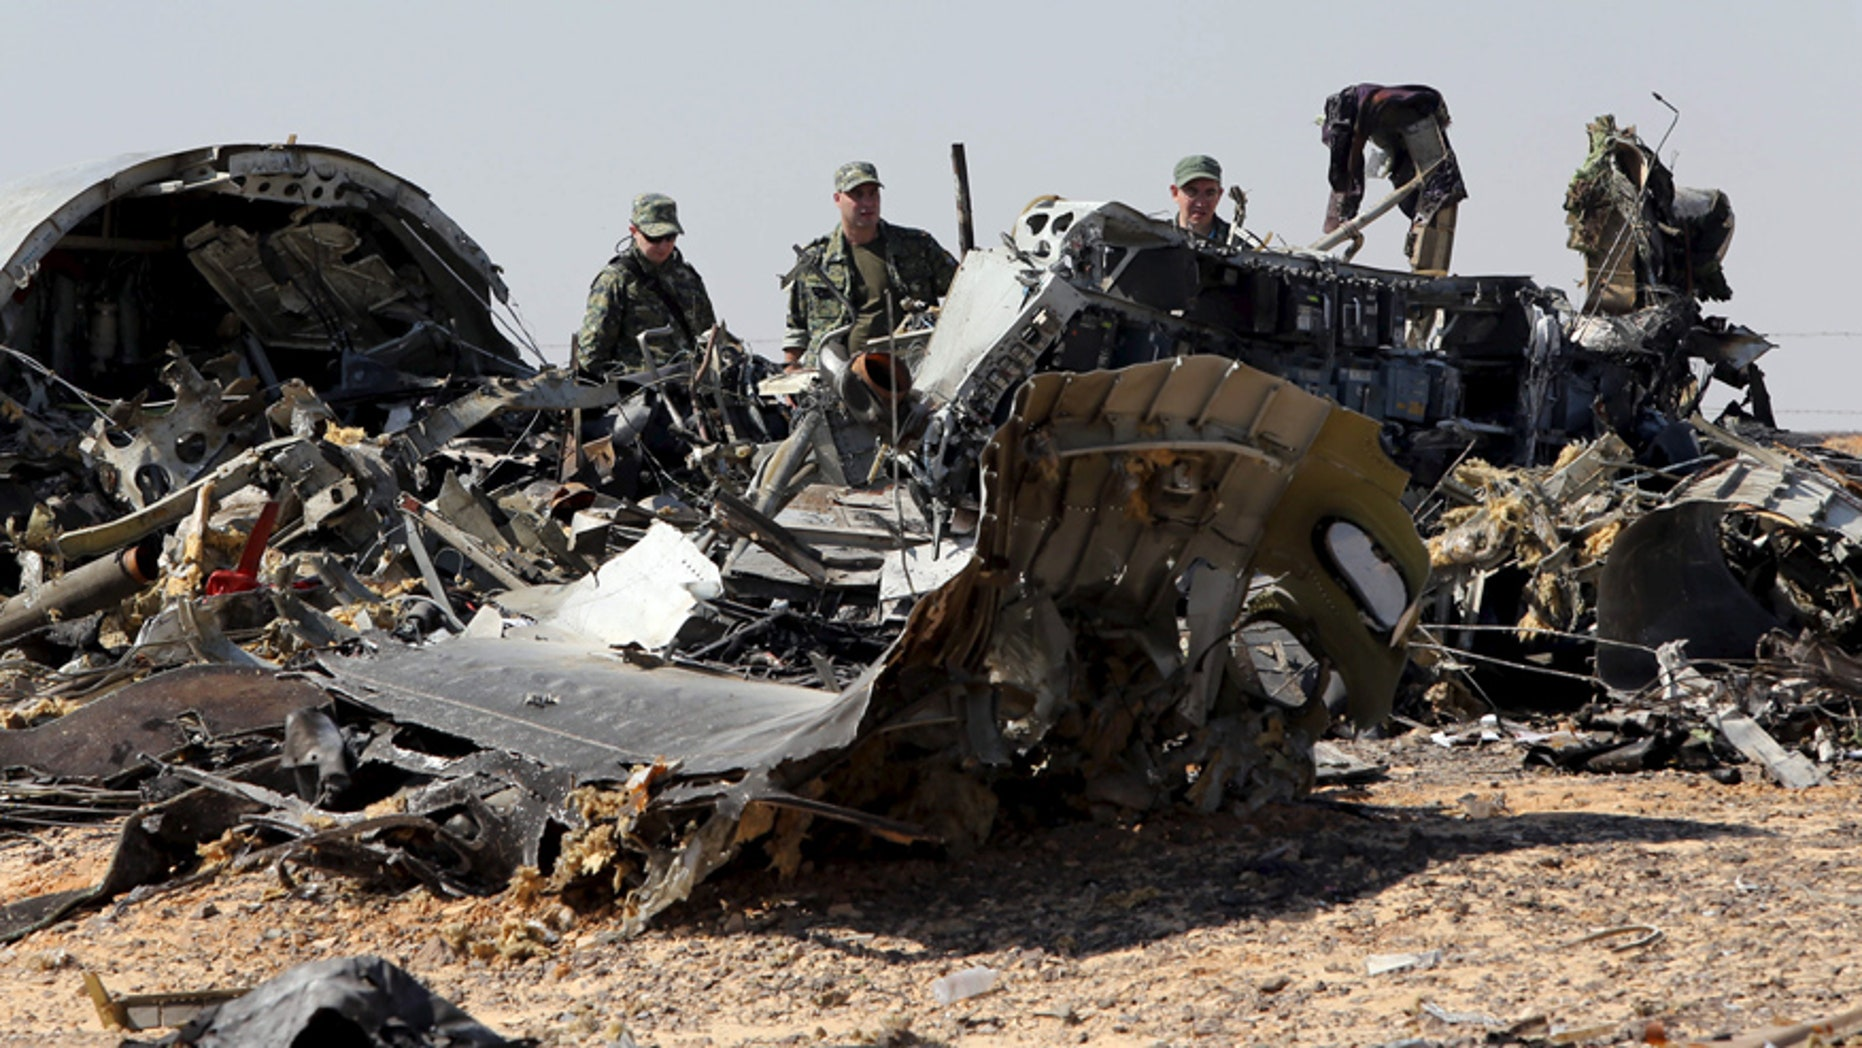 Nov. 1, 2015: Military investigators from Russia stand near the debris of a Russian airliner at the site of its crash at the Hassana area in Arish city, northern Egypt.